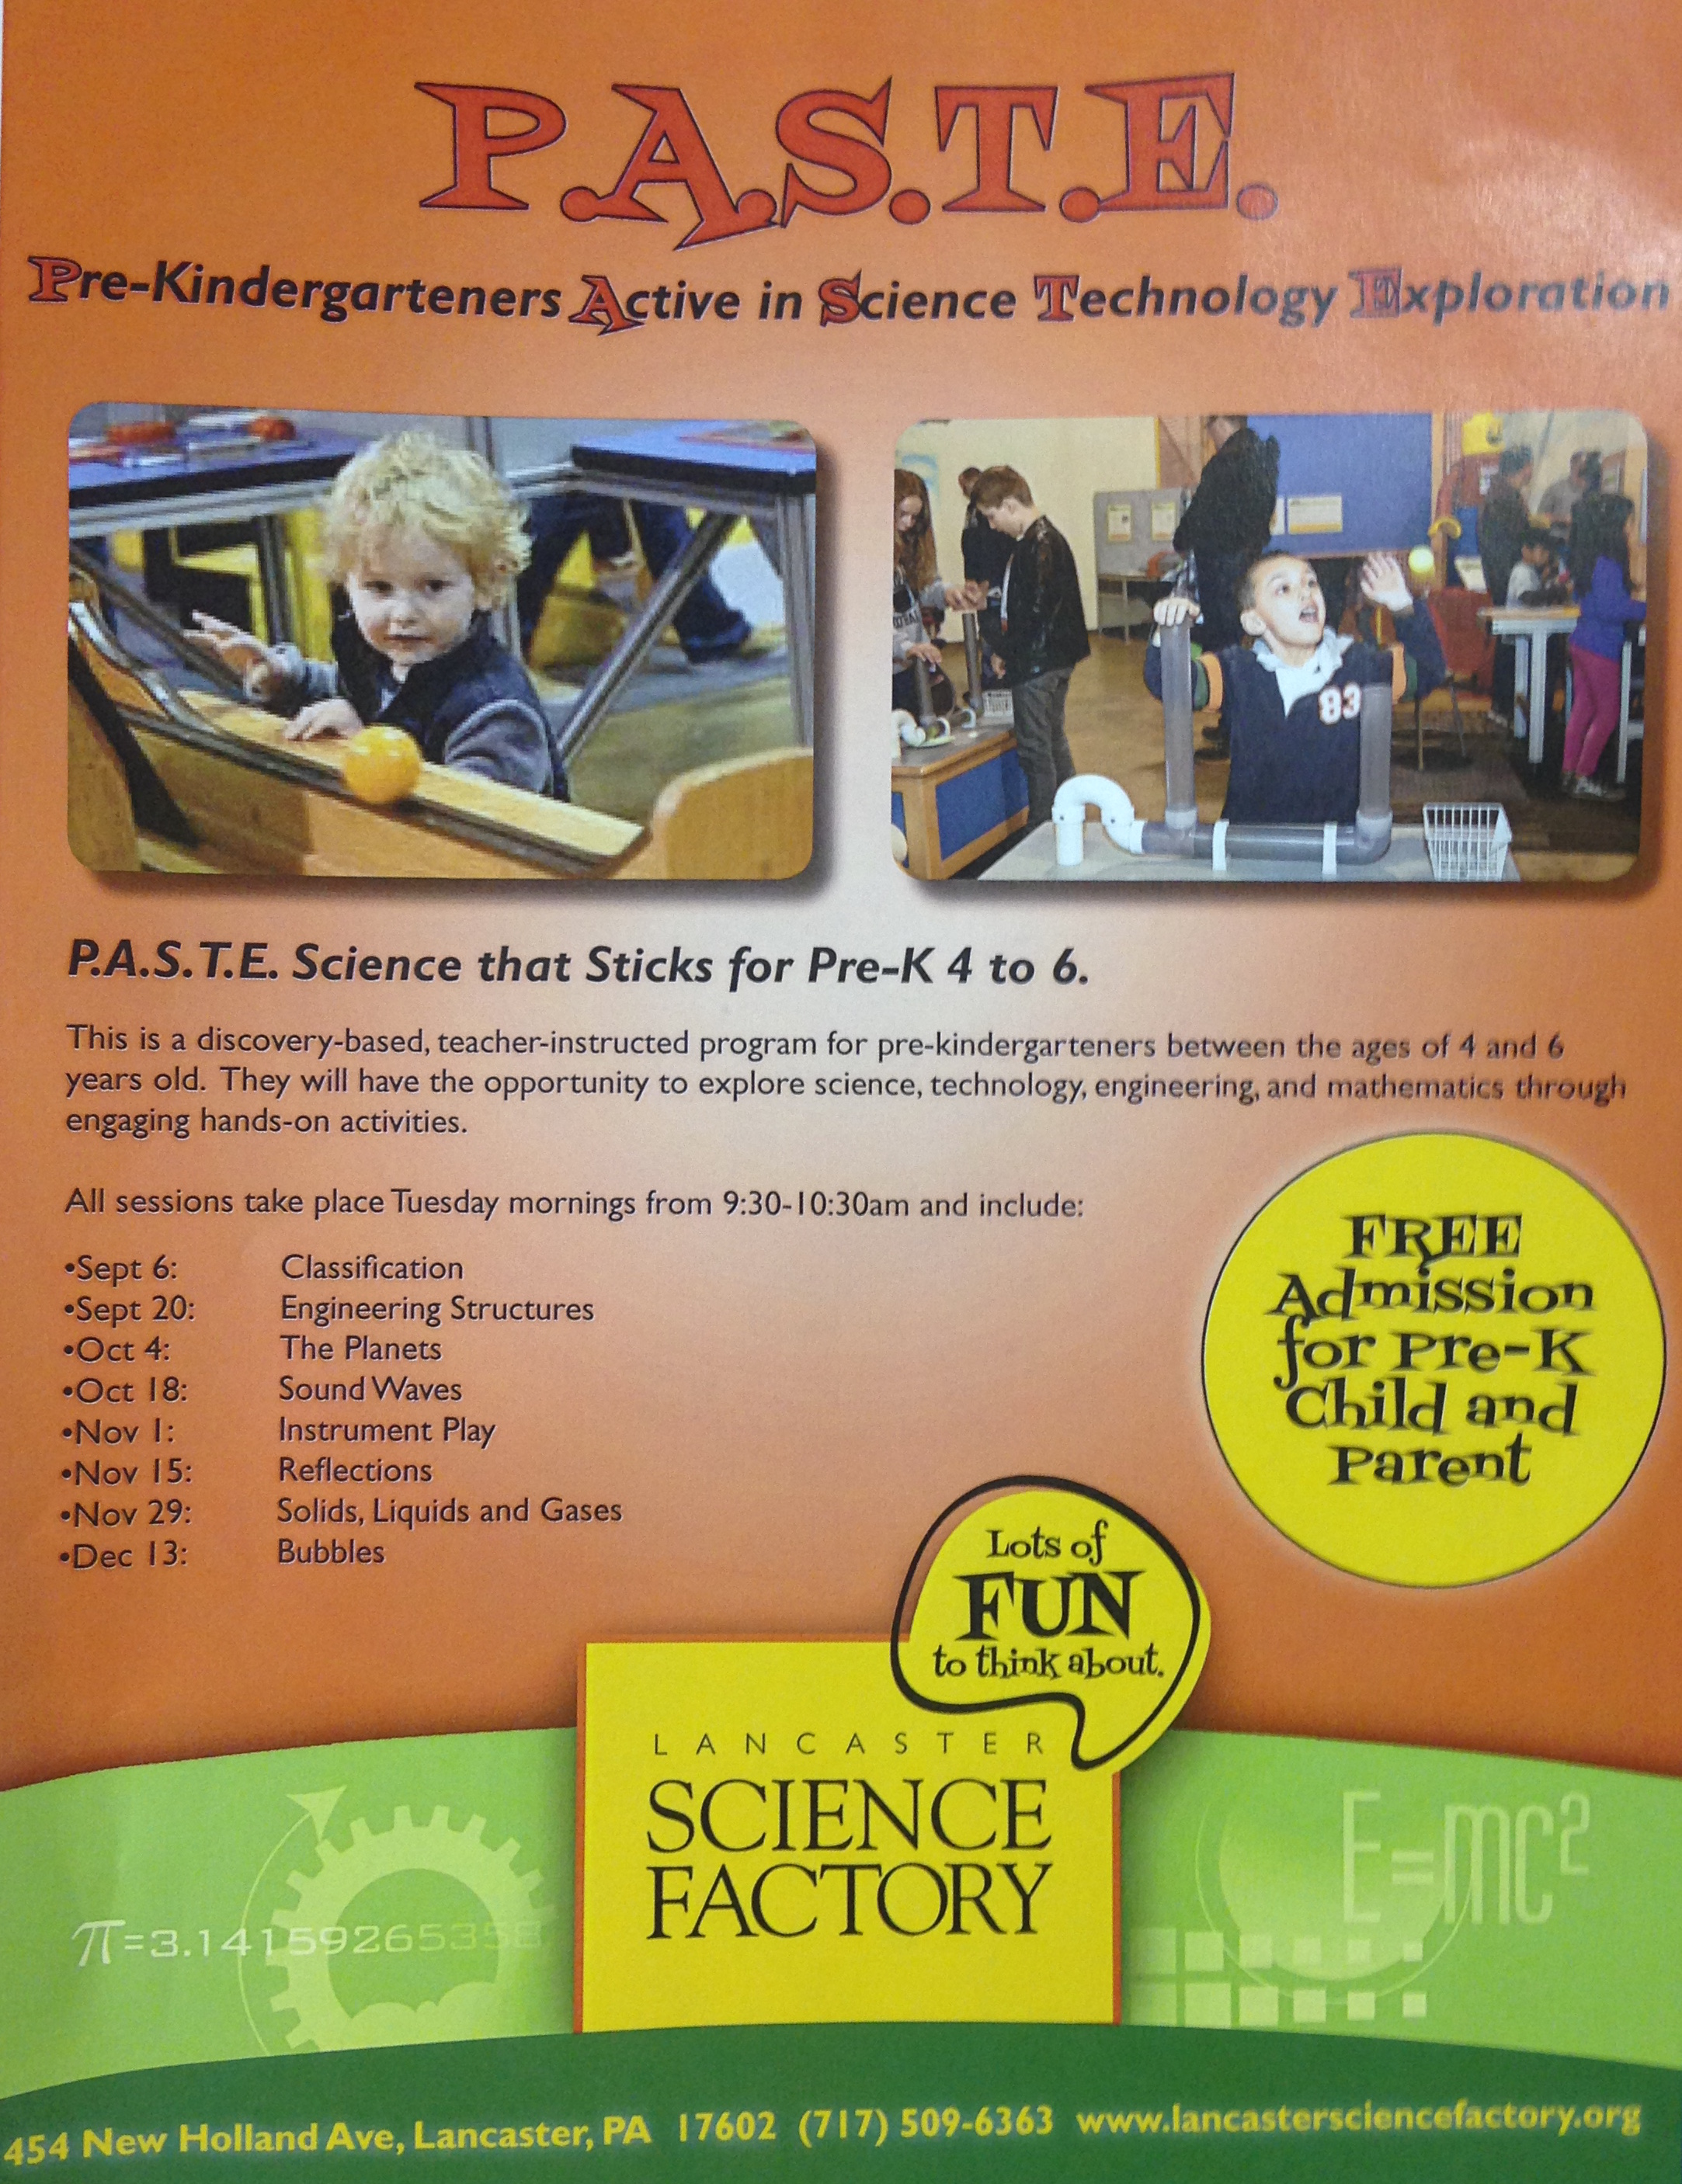 FREE Science Sessions for Pre-Kindergarteners at the Lancaster Science Factory – P.A.S.T.E.